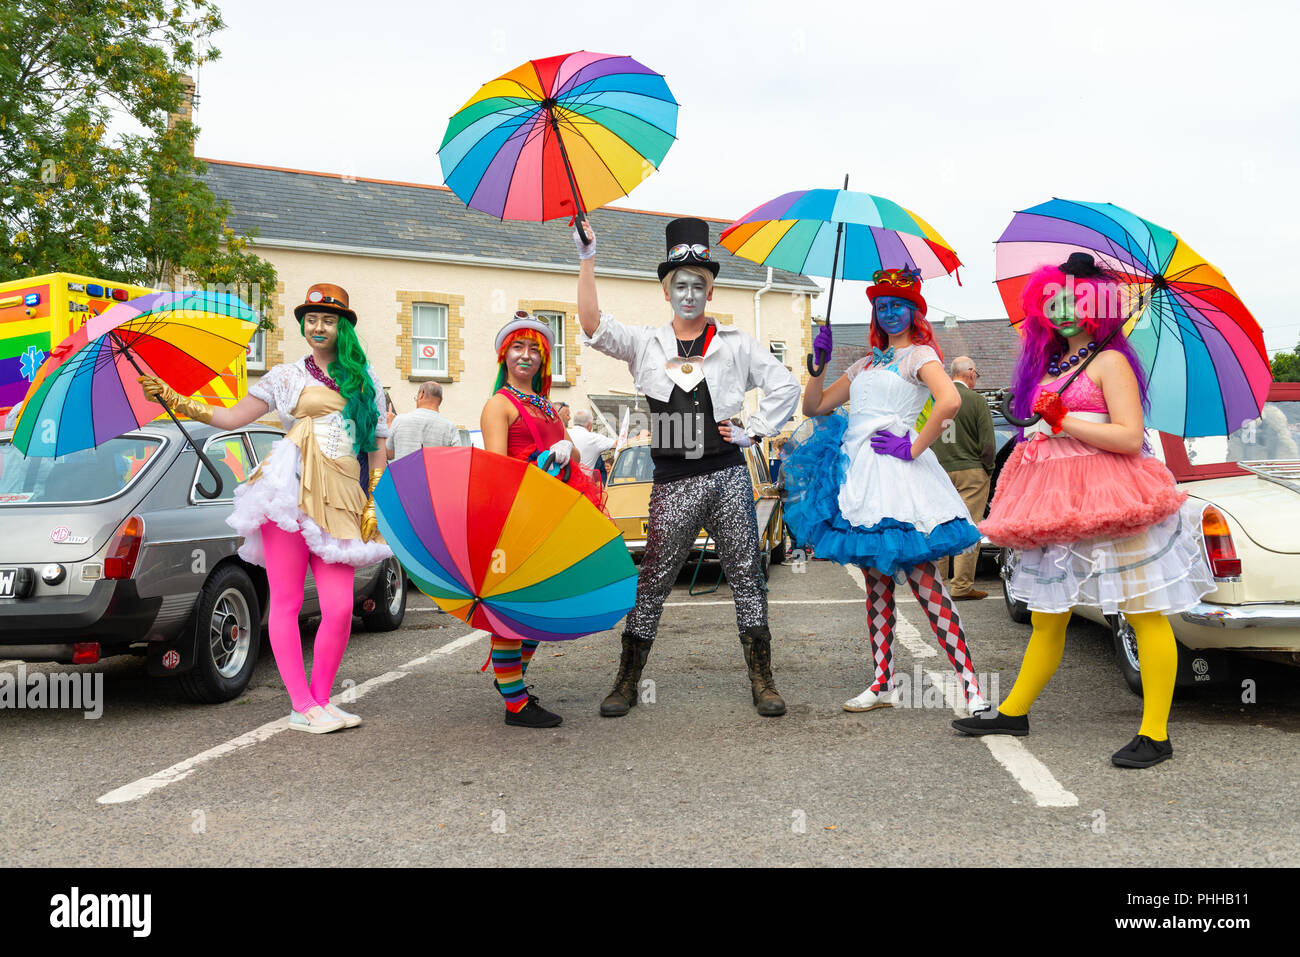 Cardiff, UK. 01st Sep, 2018. Colourful and glittery Participants in the first ever Llantwit Major Pride event today, Saturday 1/9/18 in The Vale of Glamorgan, South Wales, UK. Credit: Roger Donovan/Alamy Live News - Stock Image